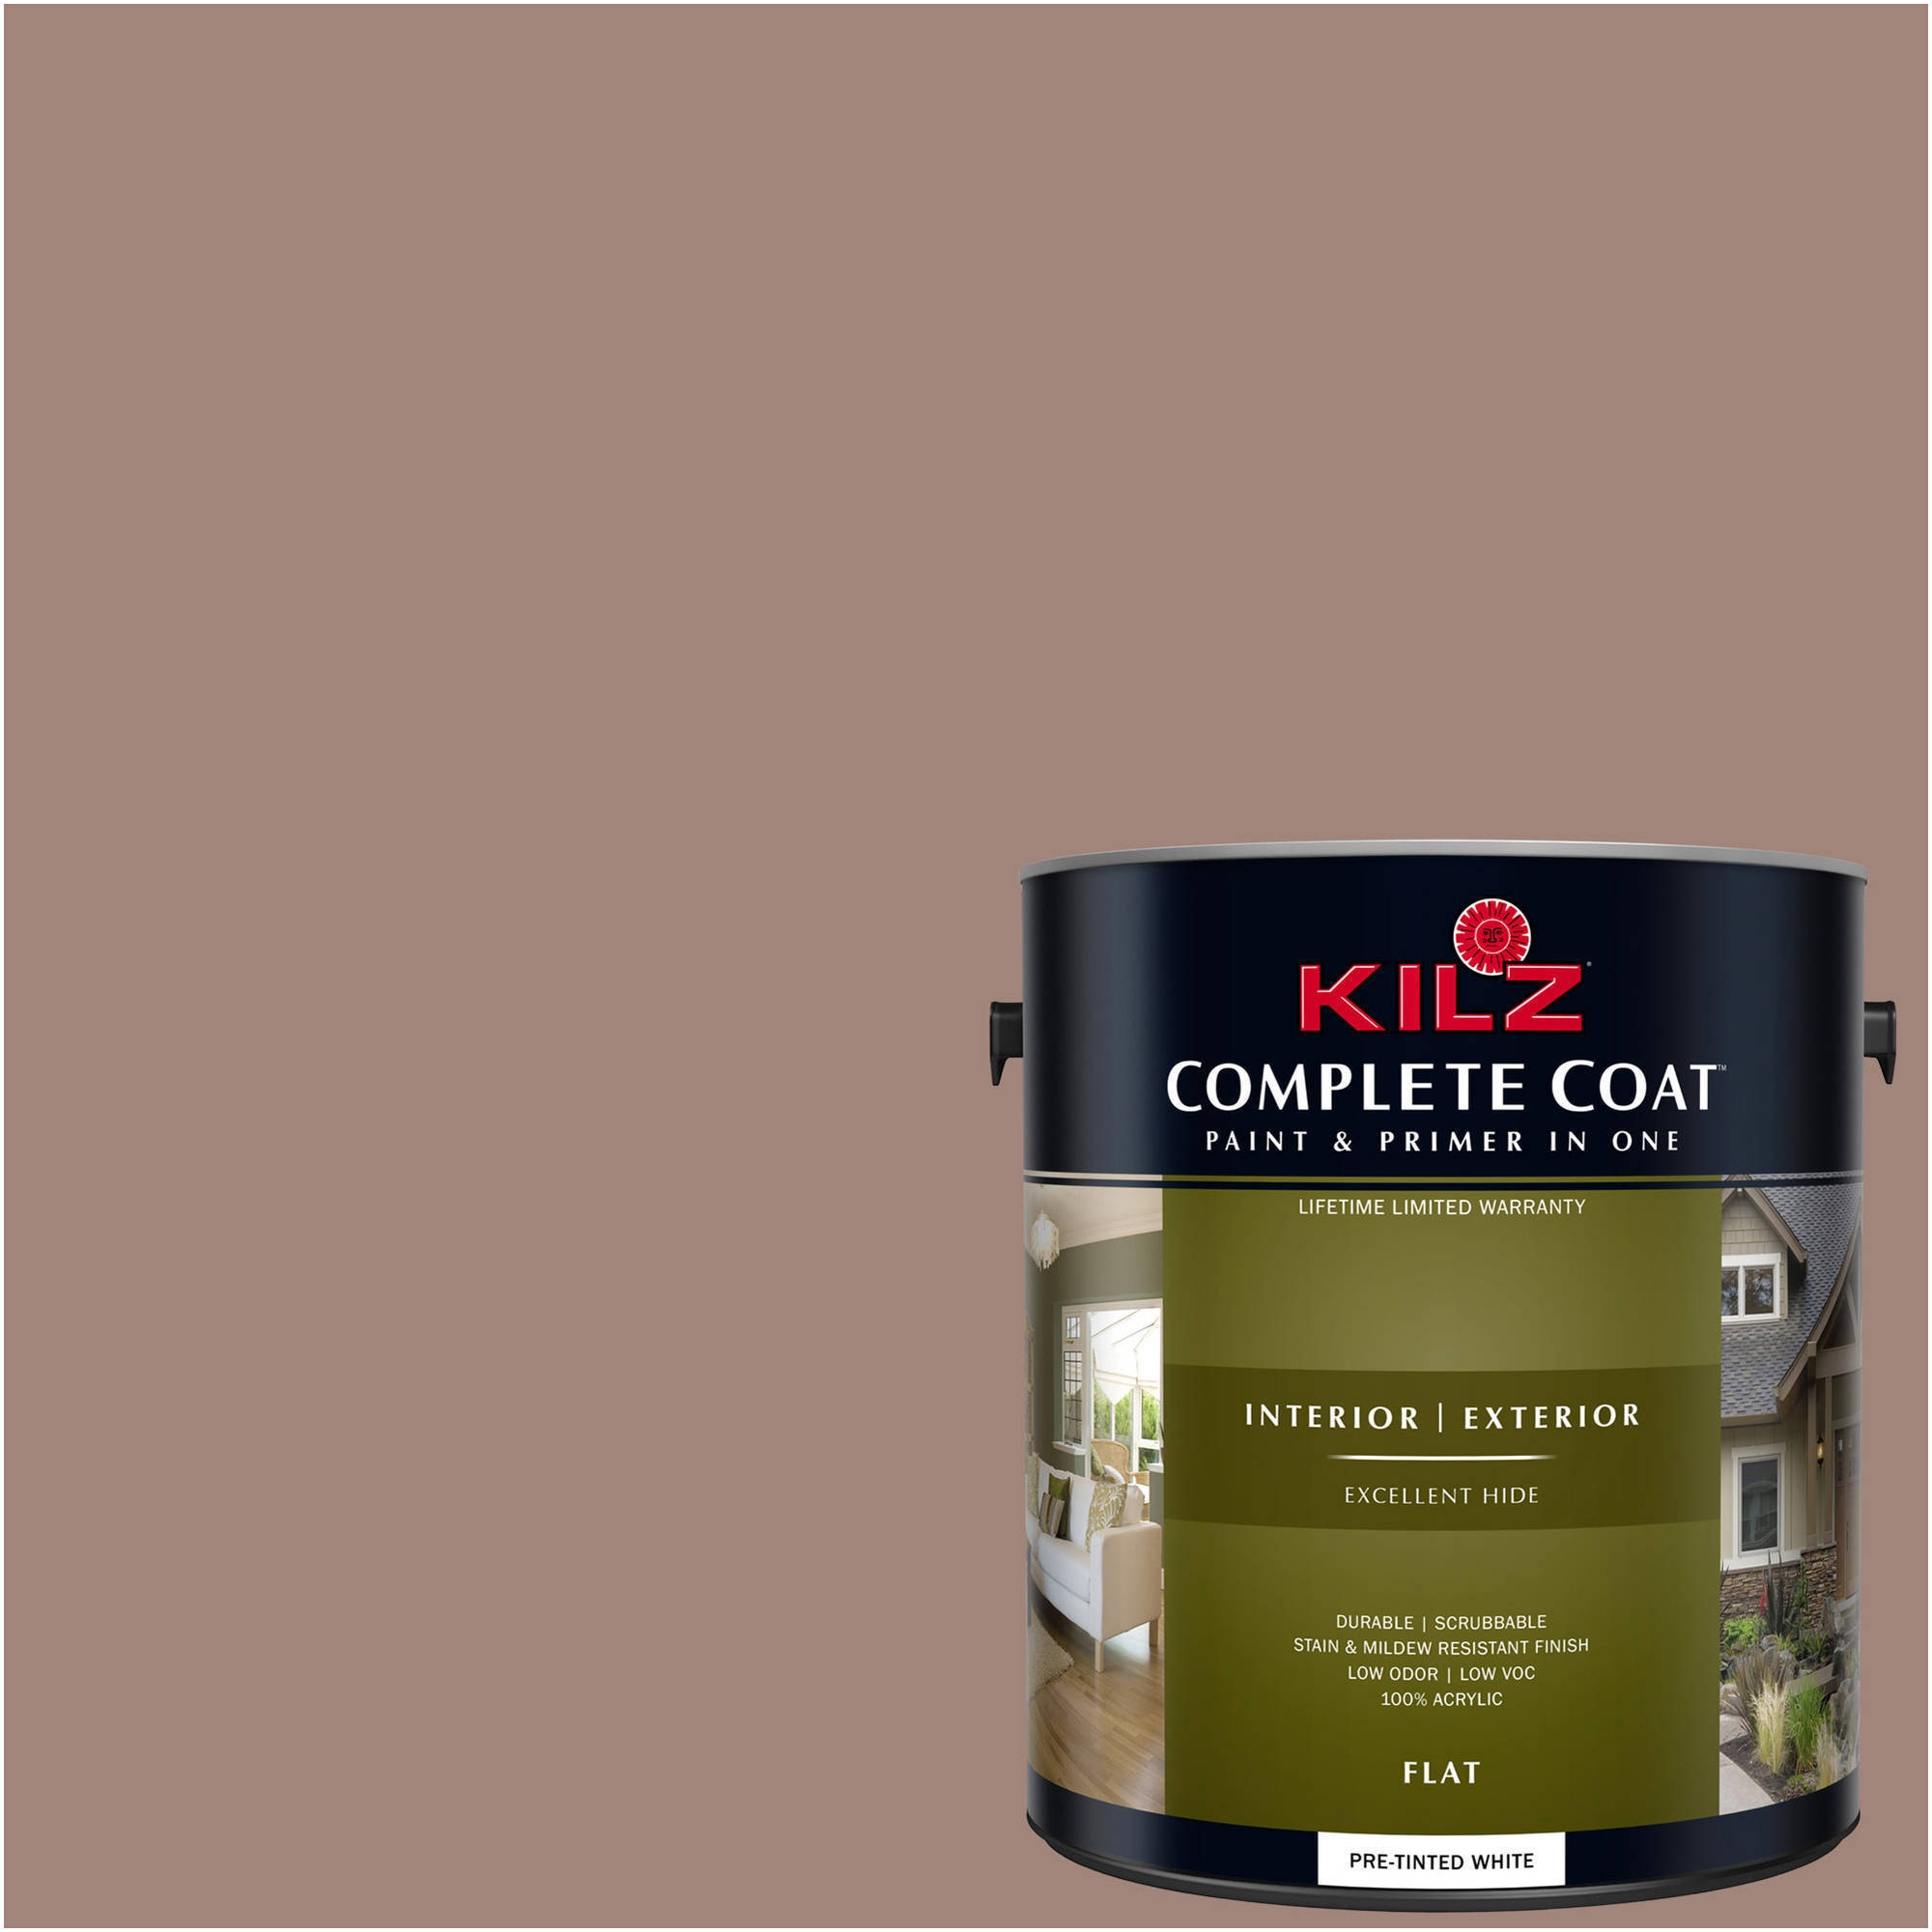 KILZ COMPLETE COAT Interior/Exterior Paint & Primer in One #LM250 Spiced Cocoa